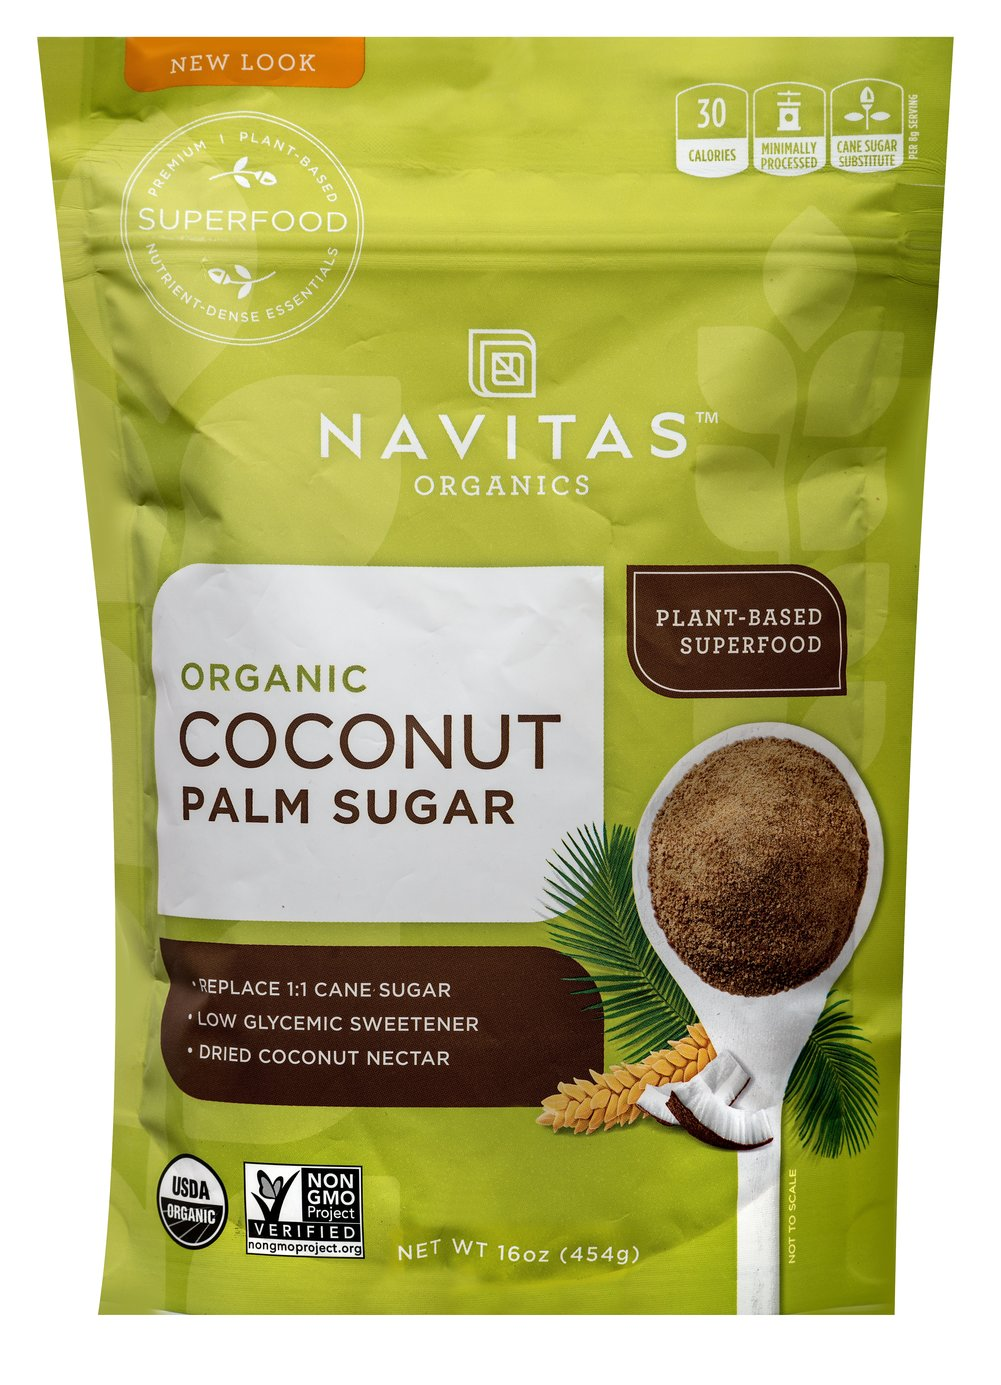 Organic Coconut Palm Sugar Thumbnail Alternate Bottle View